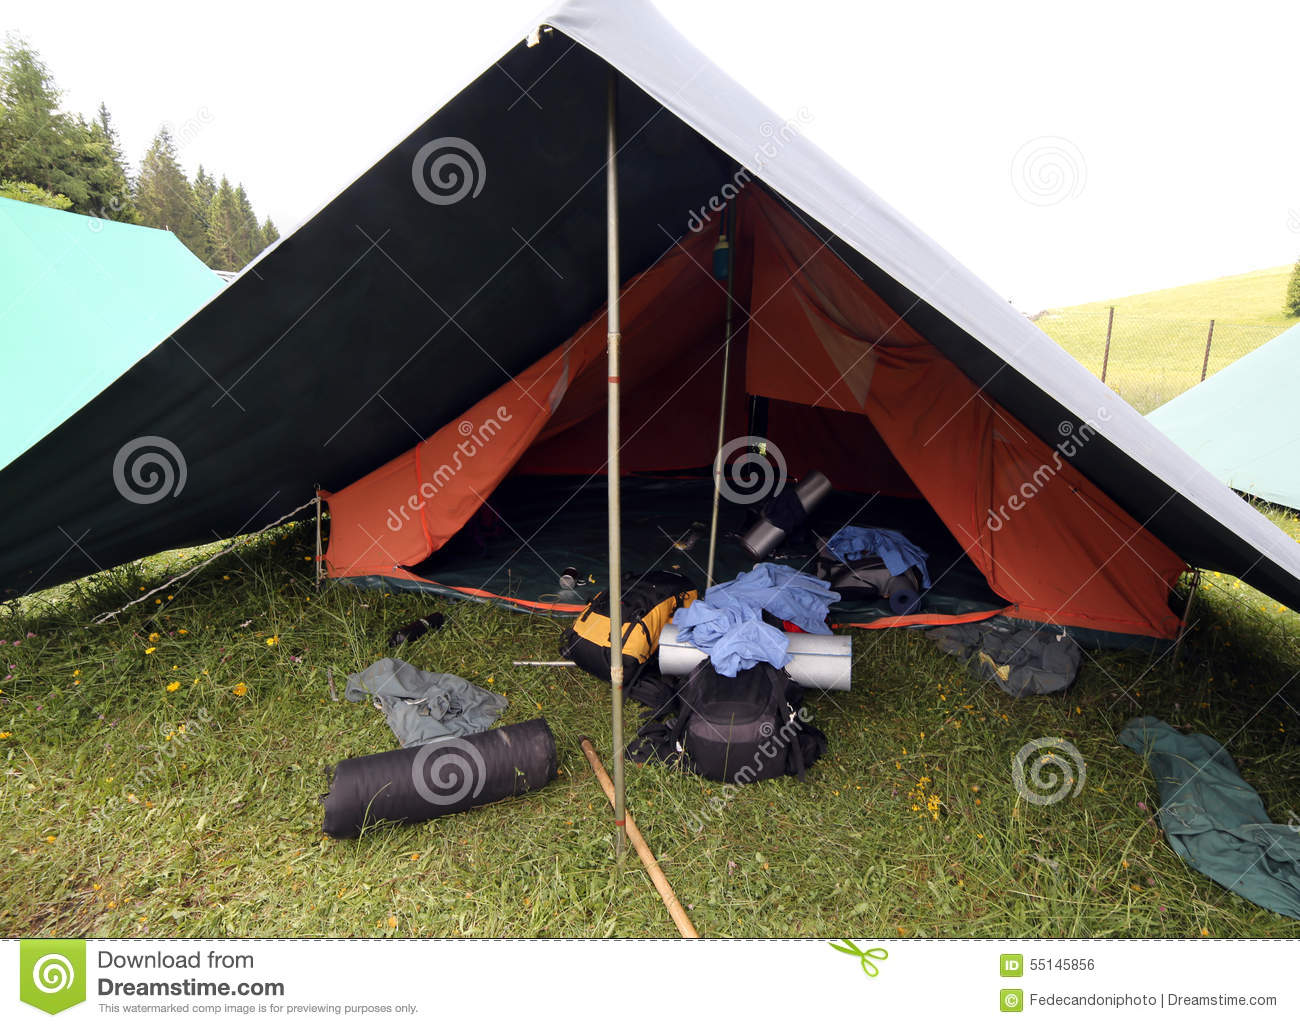 Tent of boy scout c& with backpacks and sleeping bags spread o  sc 1 st  Dreamstime.com & Tent Of Boy Scout Camp With Backpacks And Sleeping Bags Spread O ...